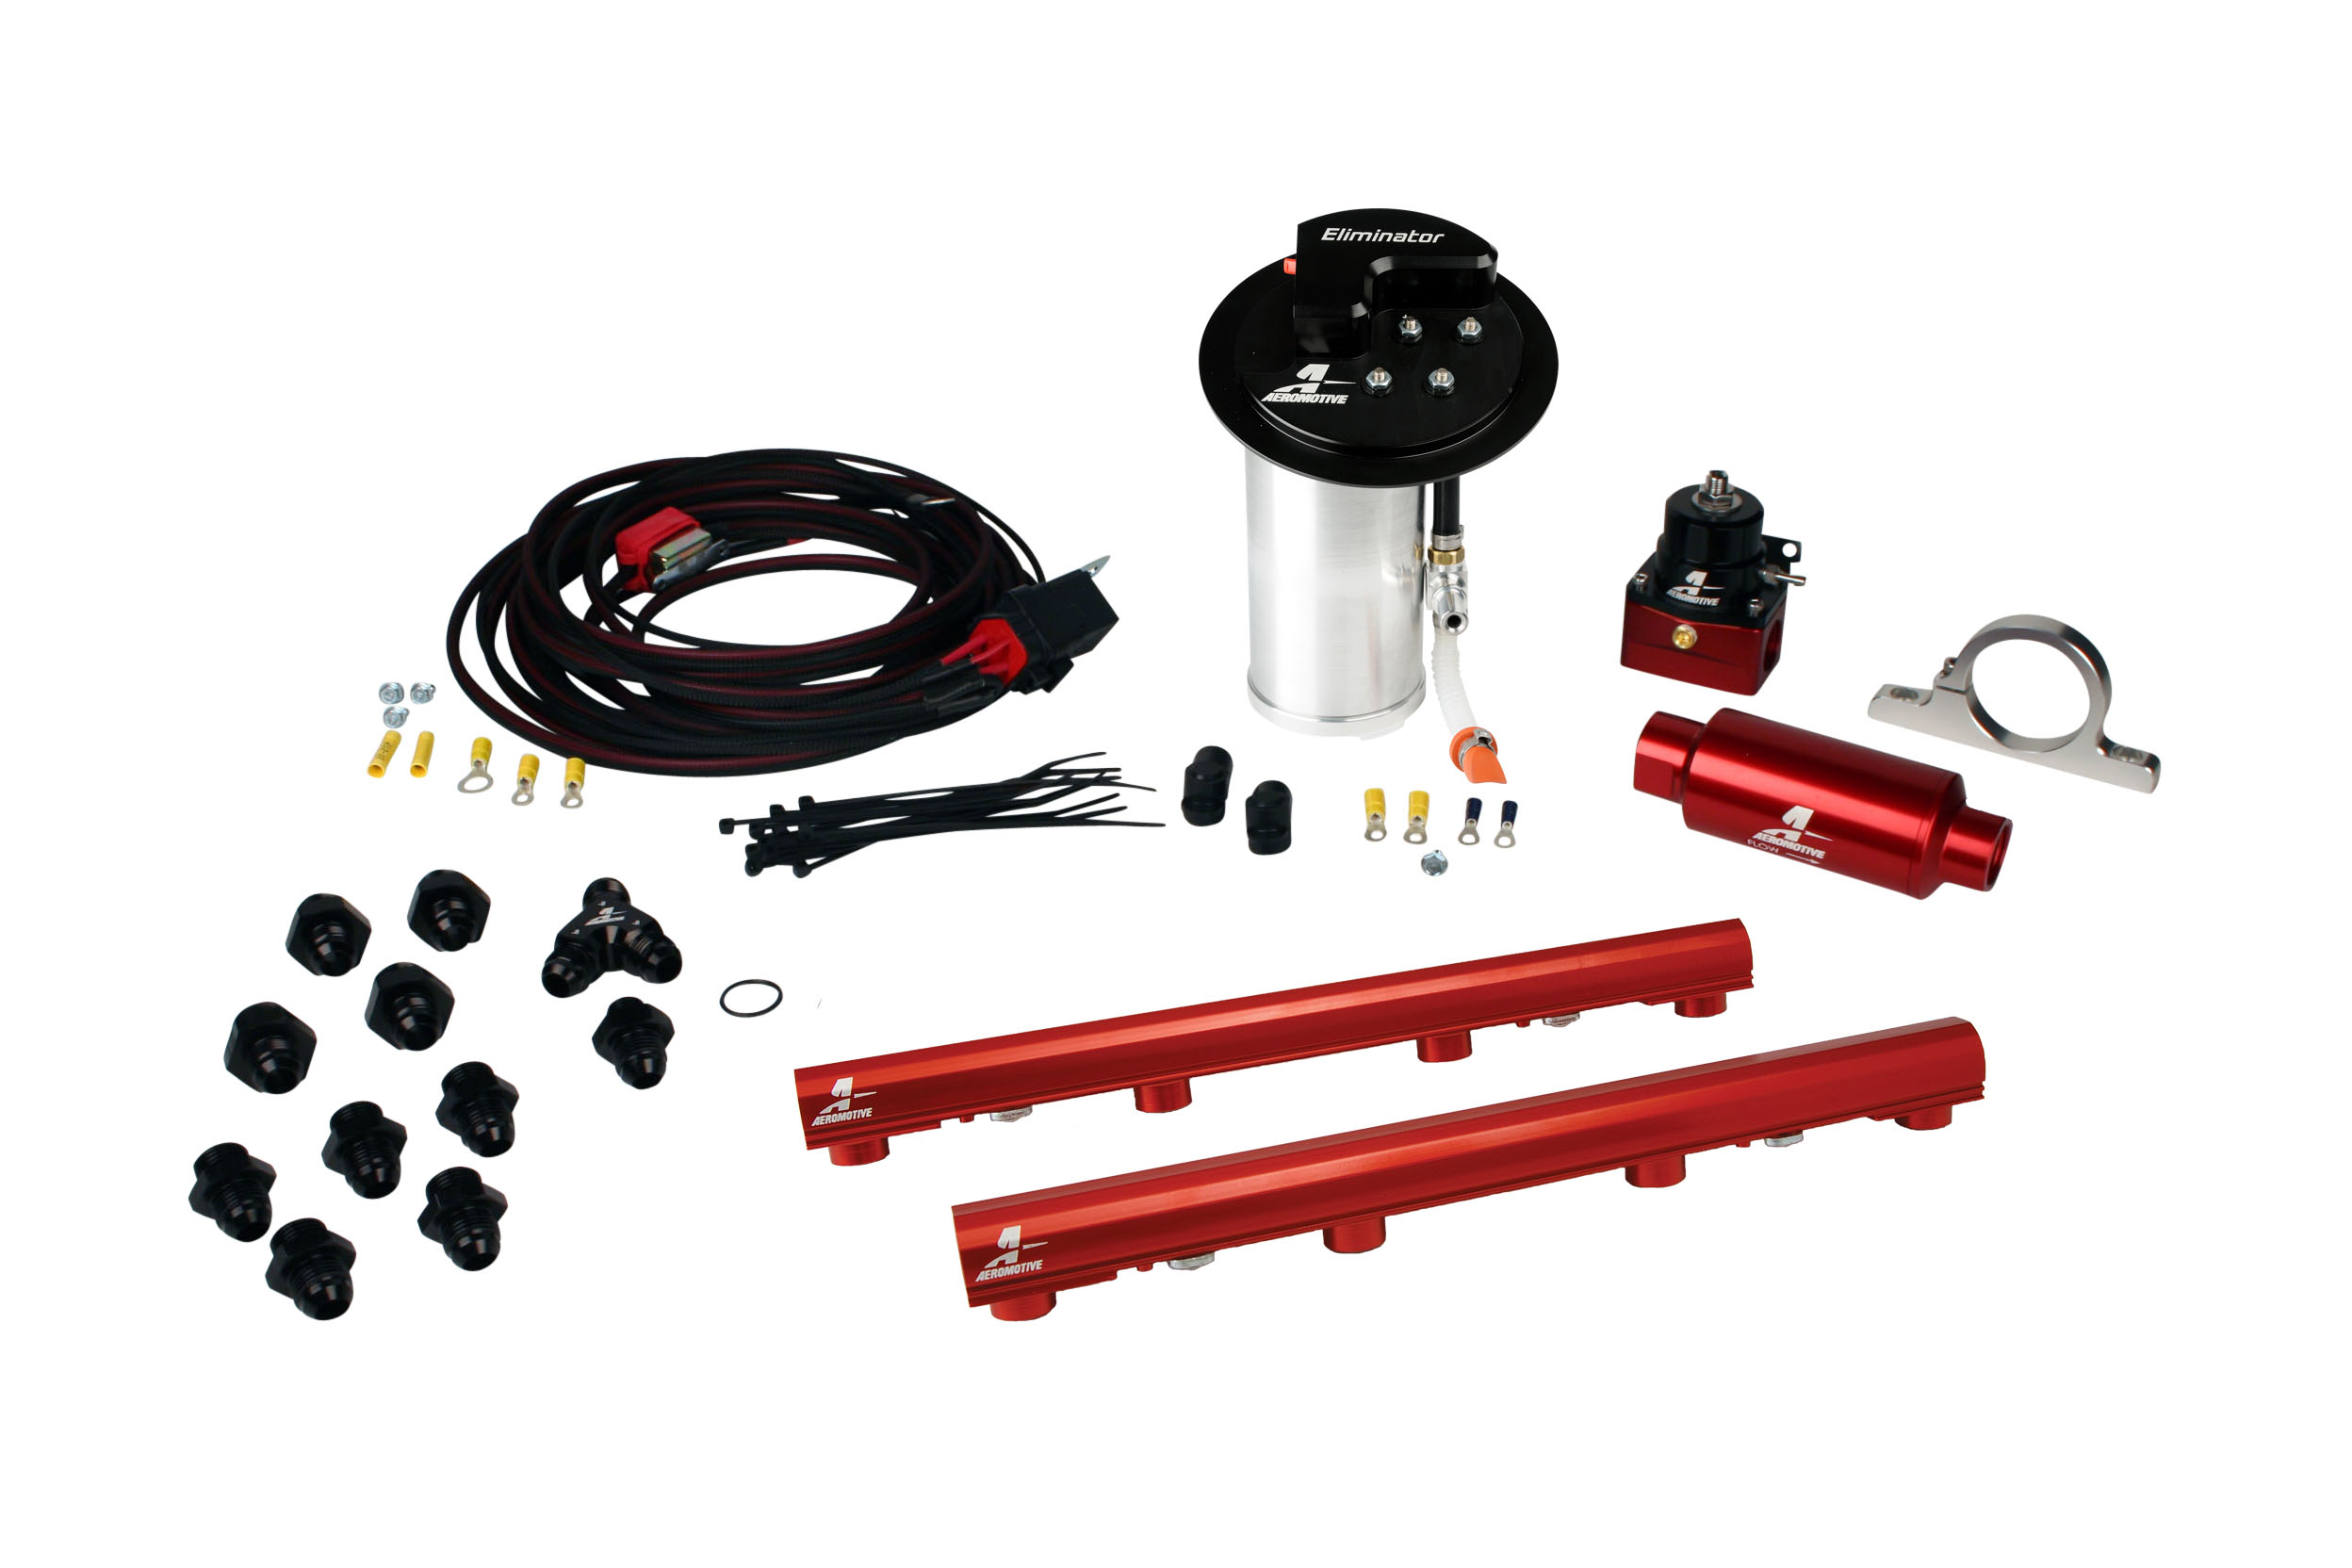 2010-2017 Ford Mustang GT Aeromotive Stealth Eliminator Racing Fuel System w/4.6L 3-V Fuel Rails